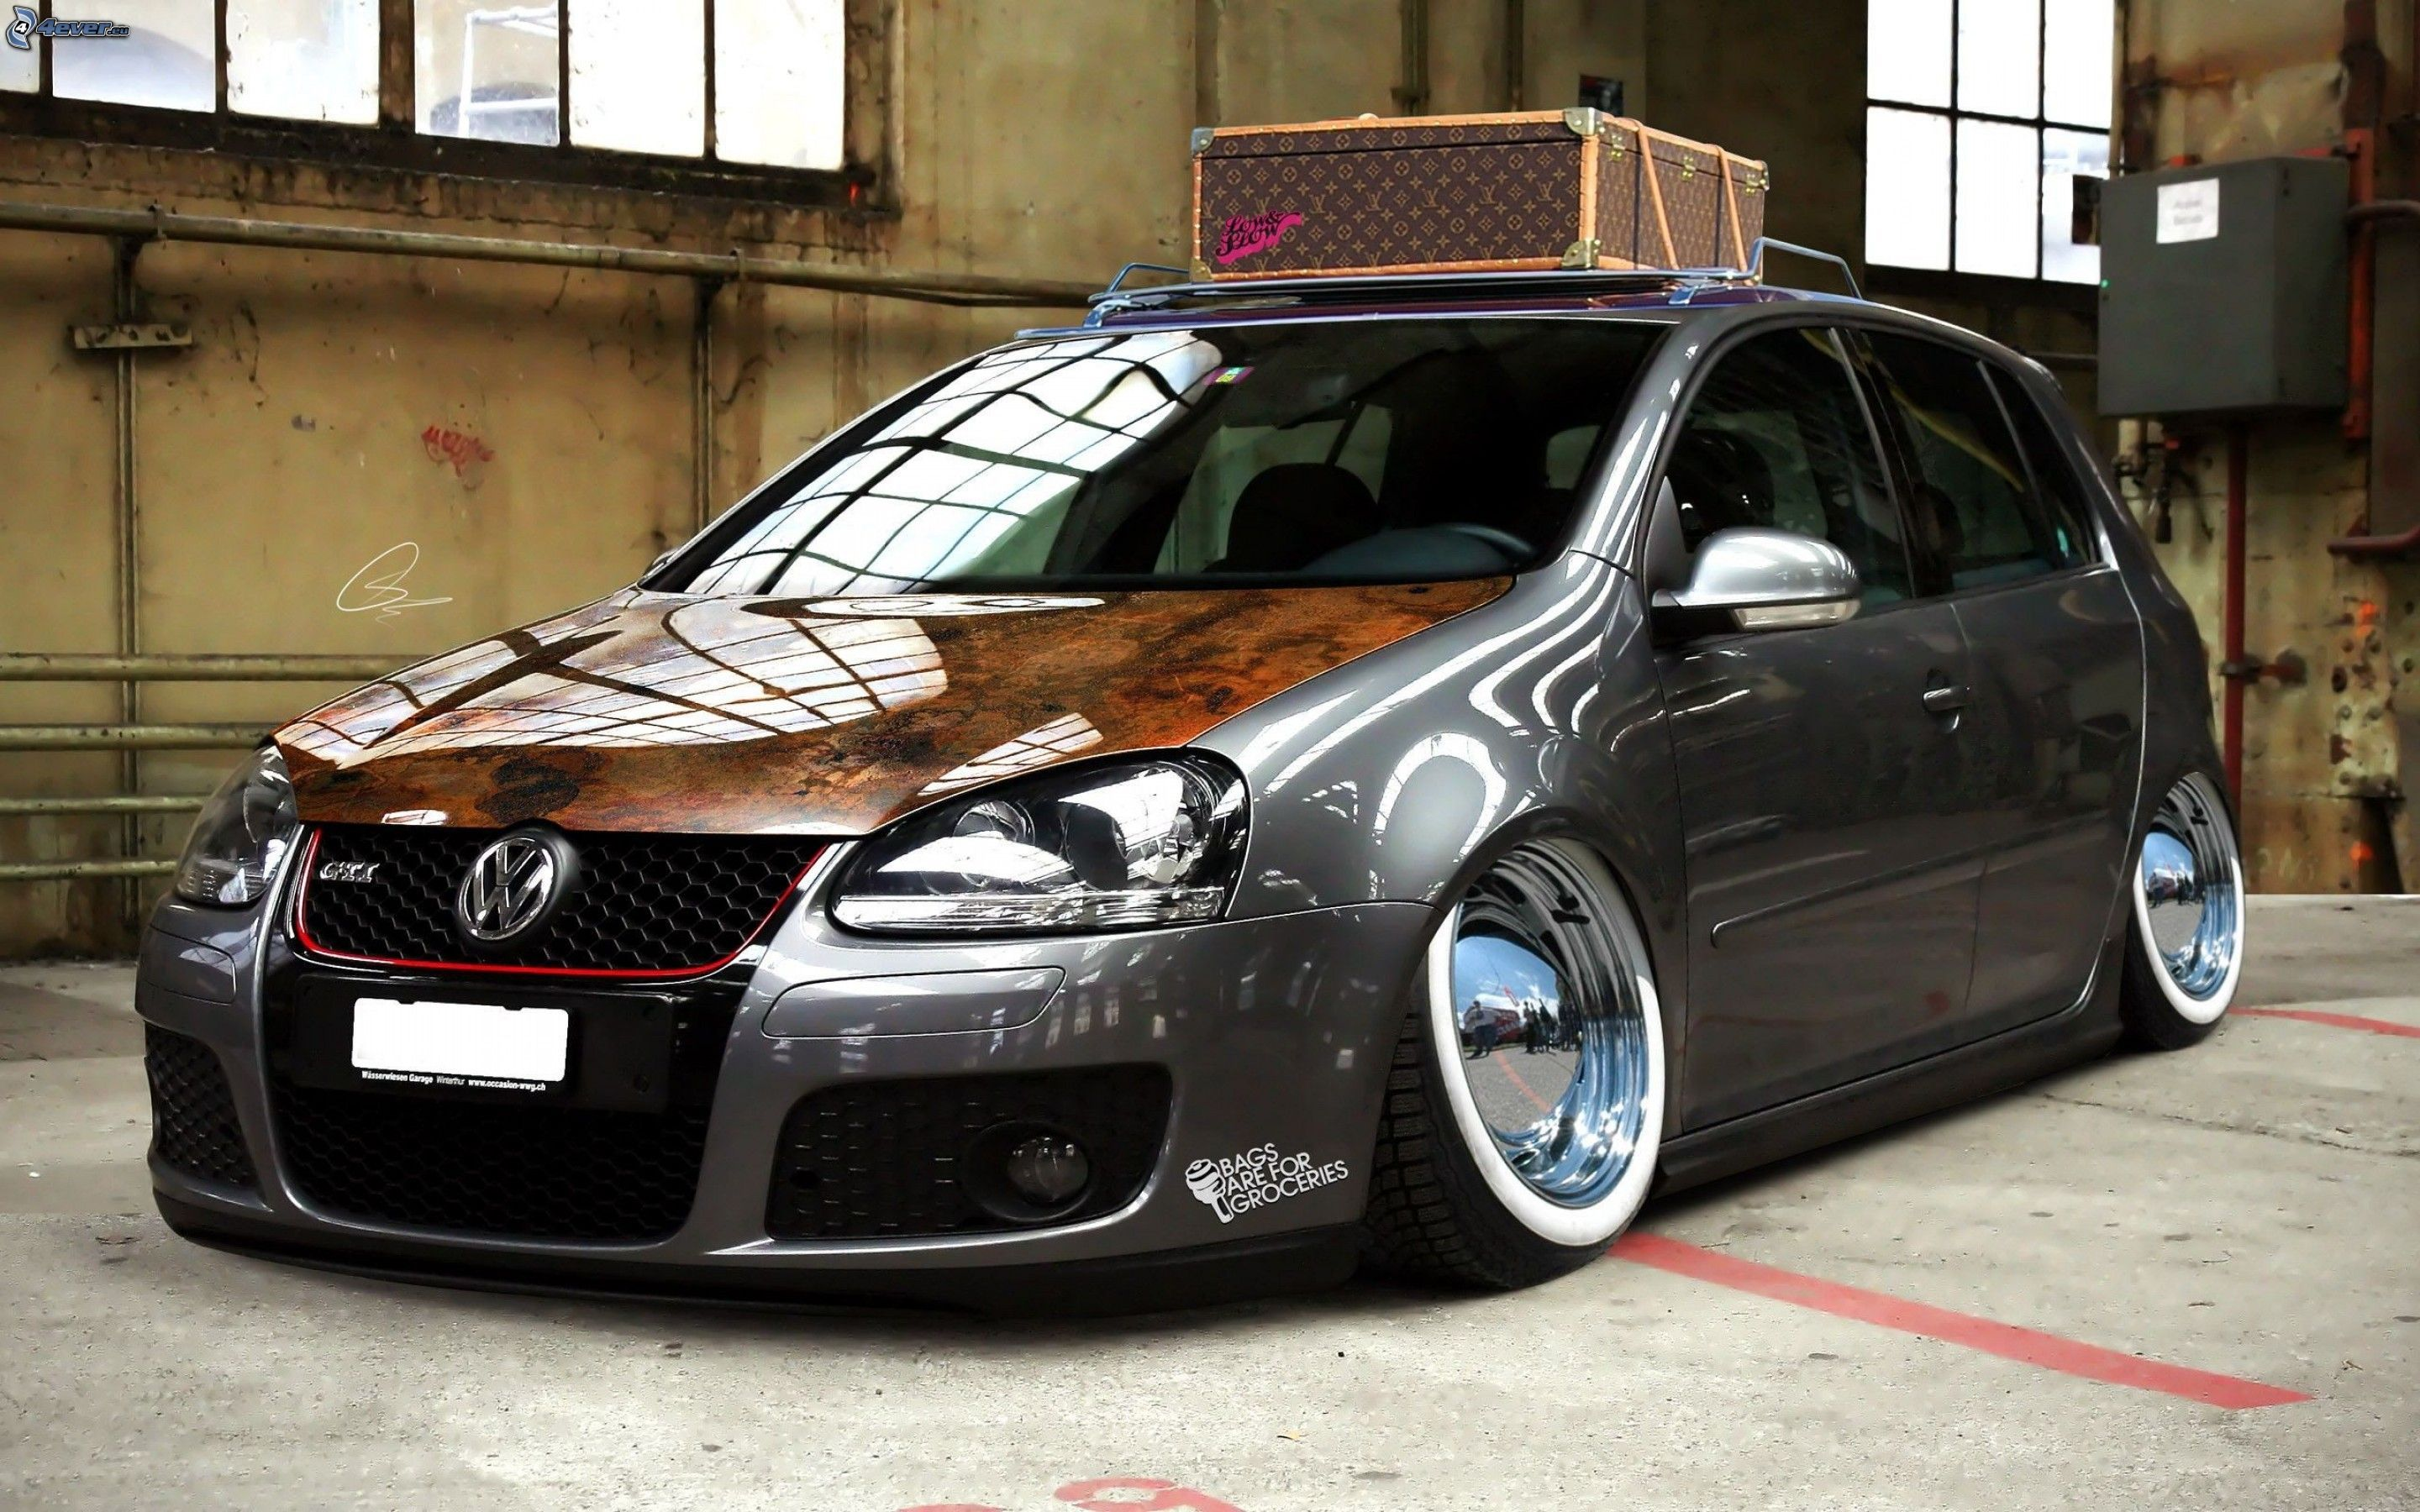 Vw Golf Mk5 Tuning Special Cool Cars Amp Motorcycles